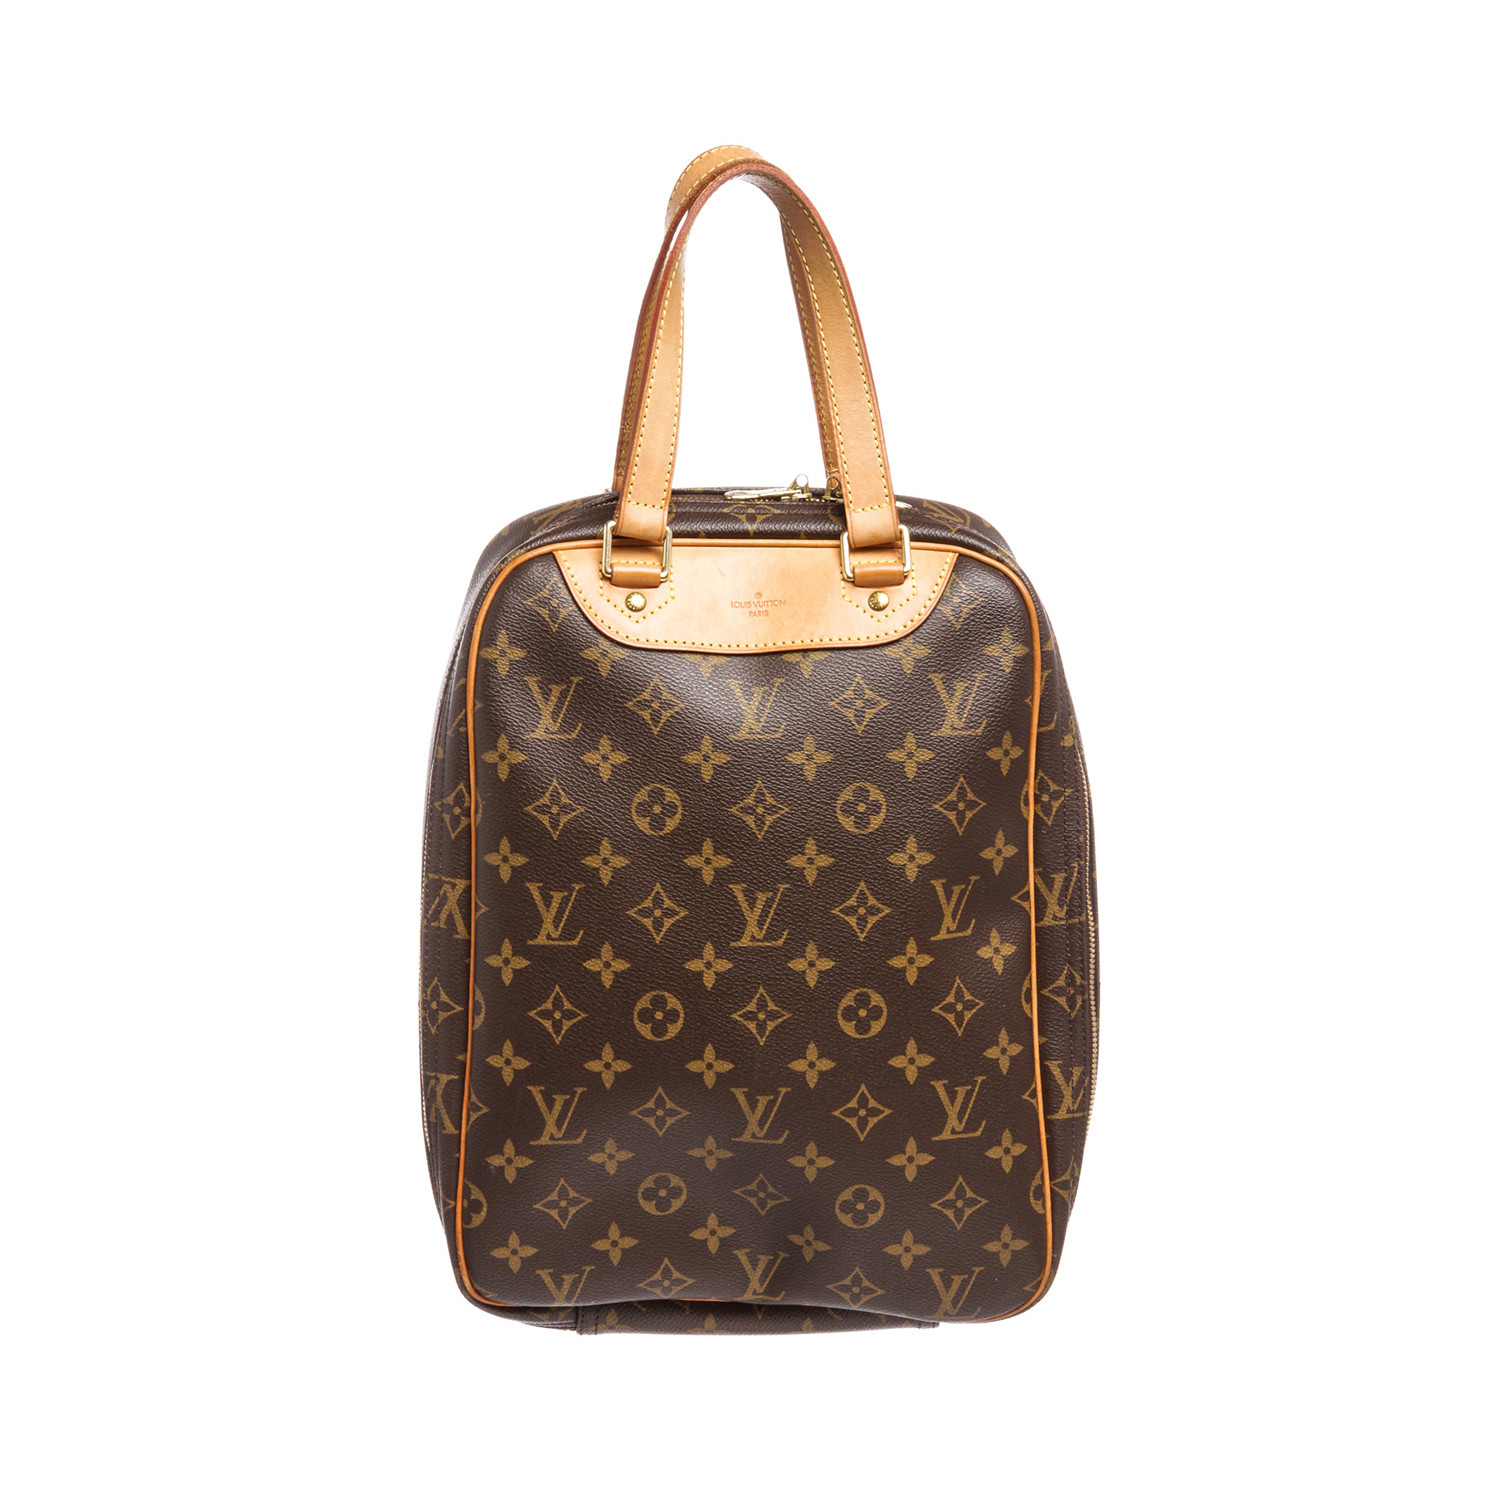 louis vuitton monogram excursion bag mb4037 pre owned louis vuitton goyard hermes. Black Bedroom Furniture Sets. Home Design Ideas